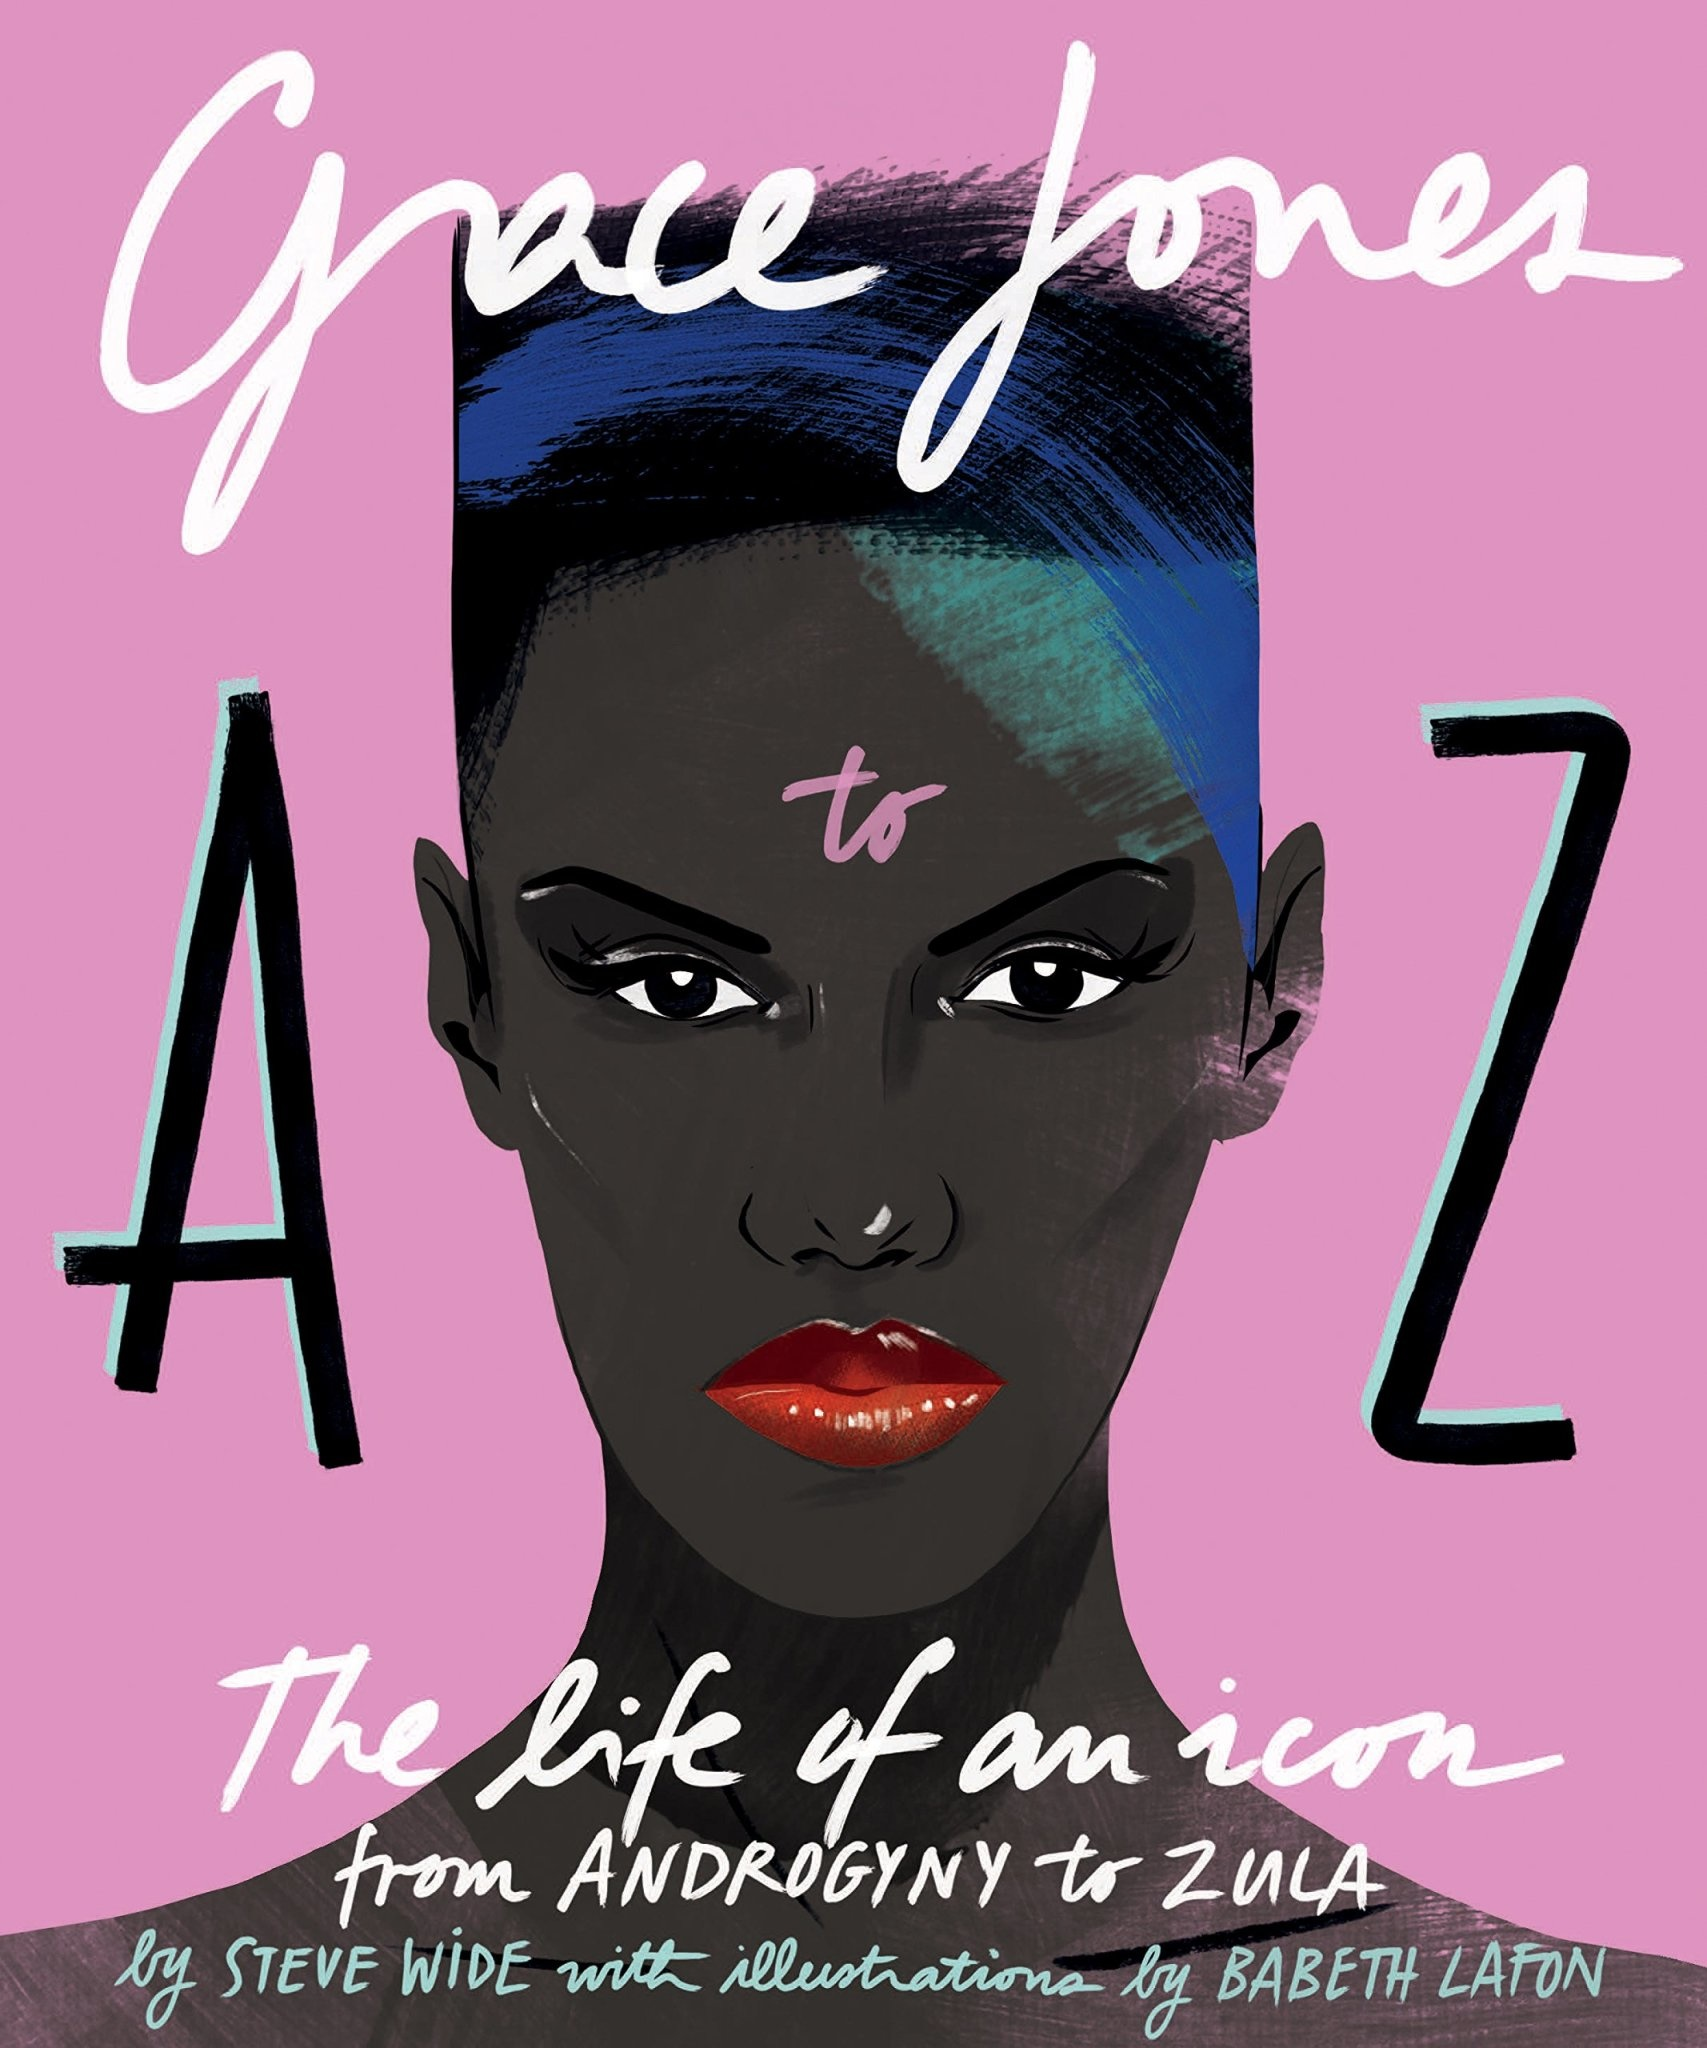 Art / Photography Grace Jones A to Z - Steve Wide